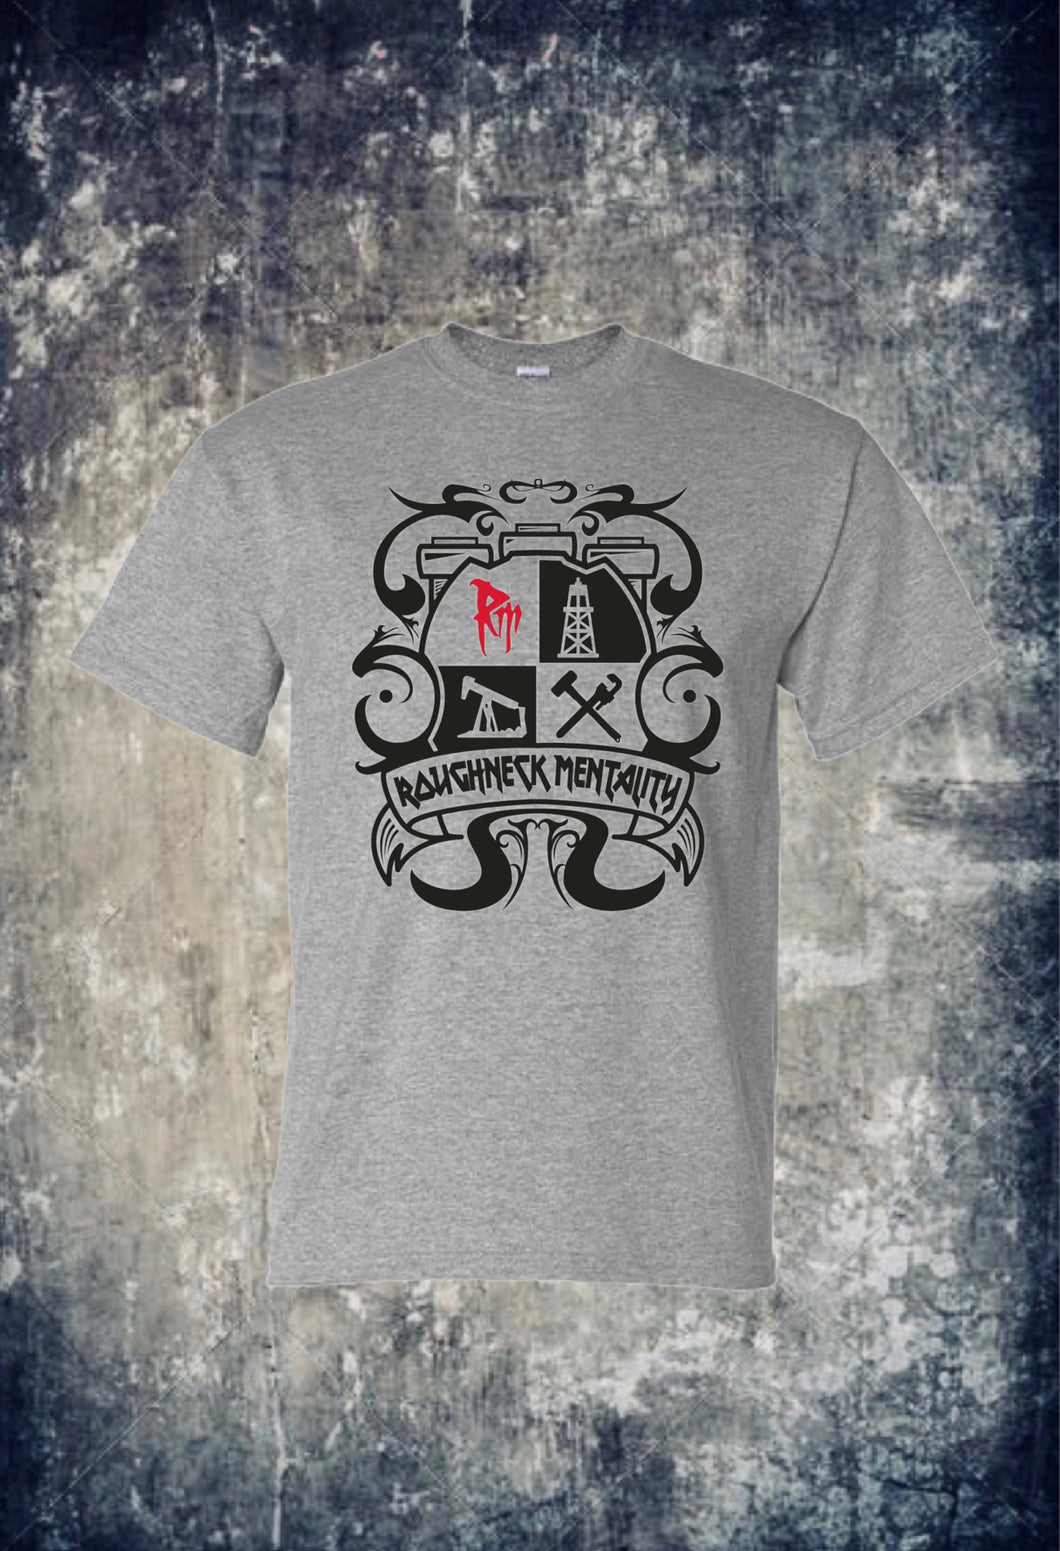 Roughneck Mentality Crest T-Shirt